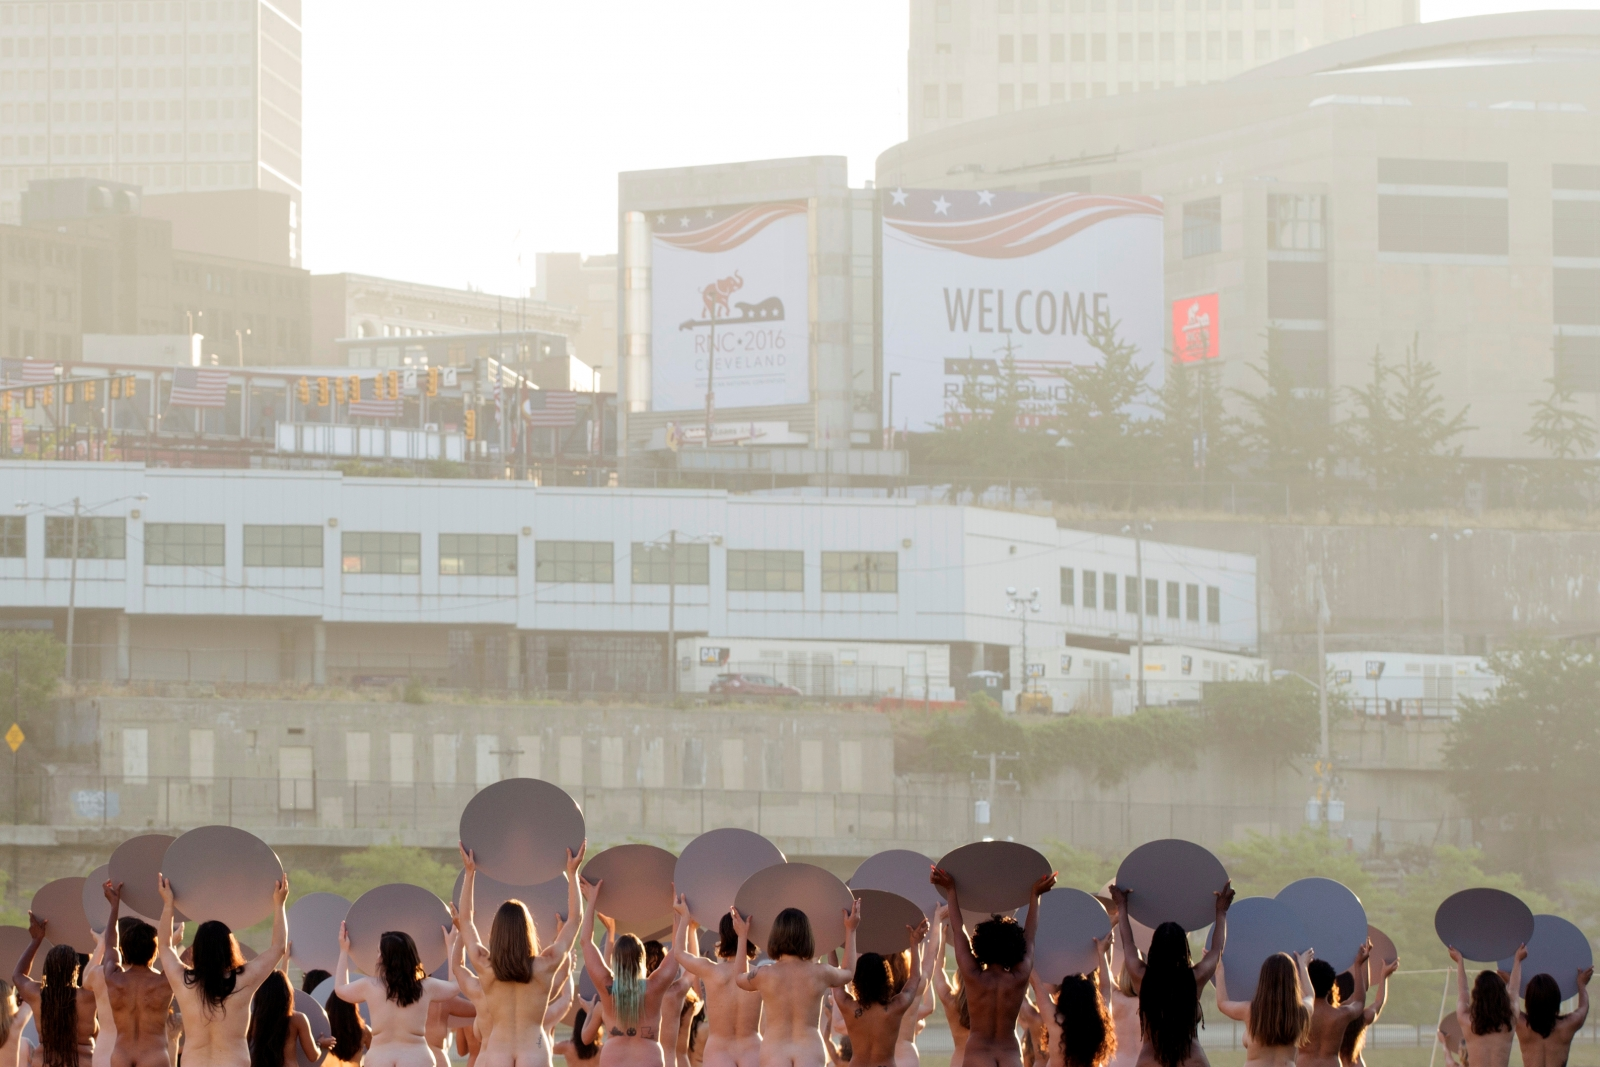 Republican Convention 2016 Women Pose Nude To Protest -3356